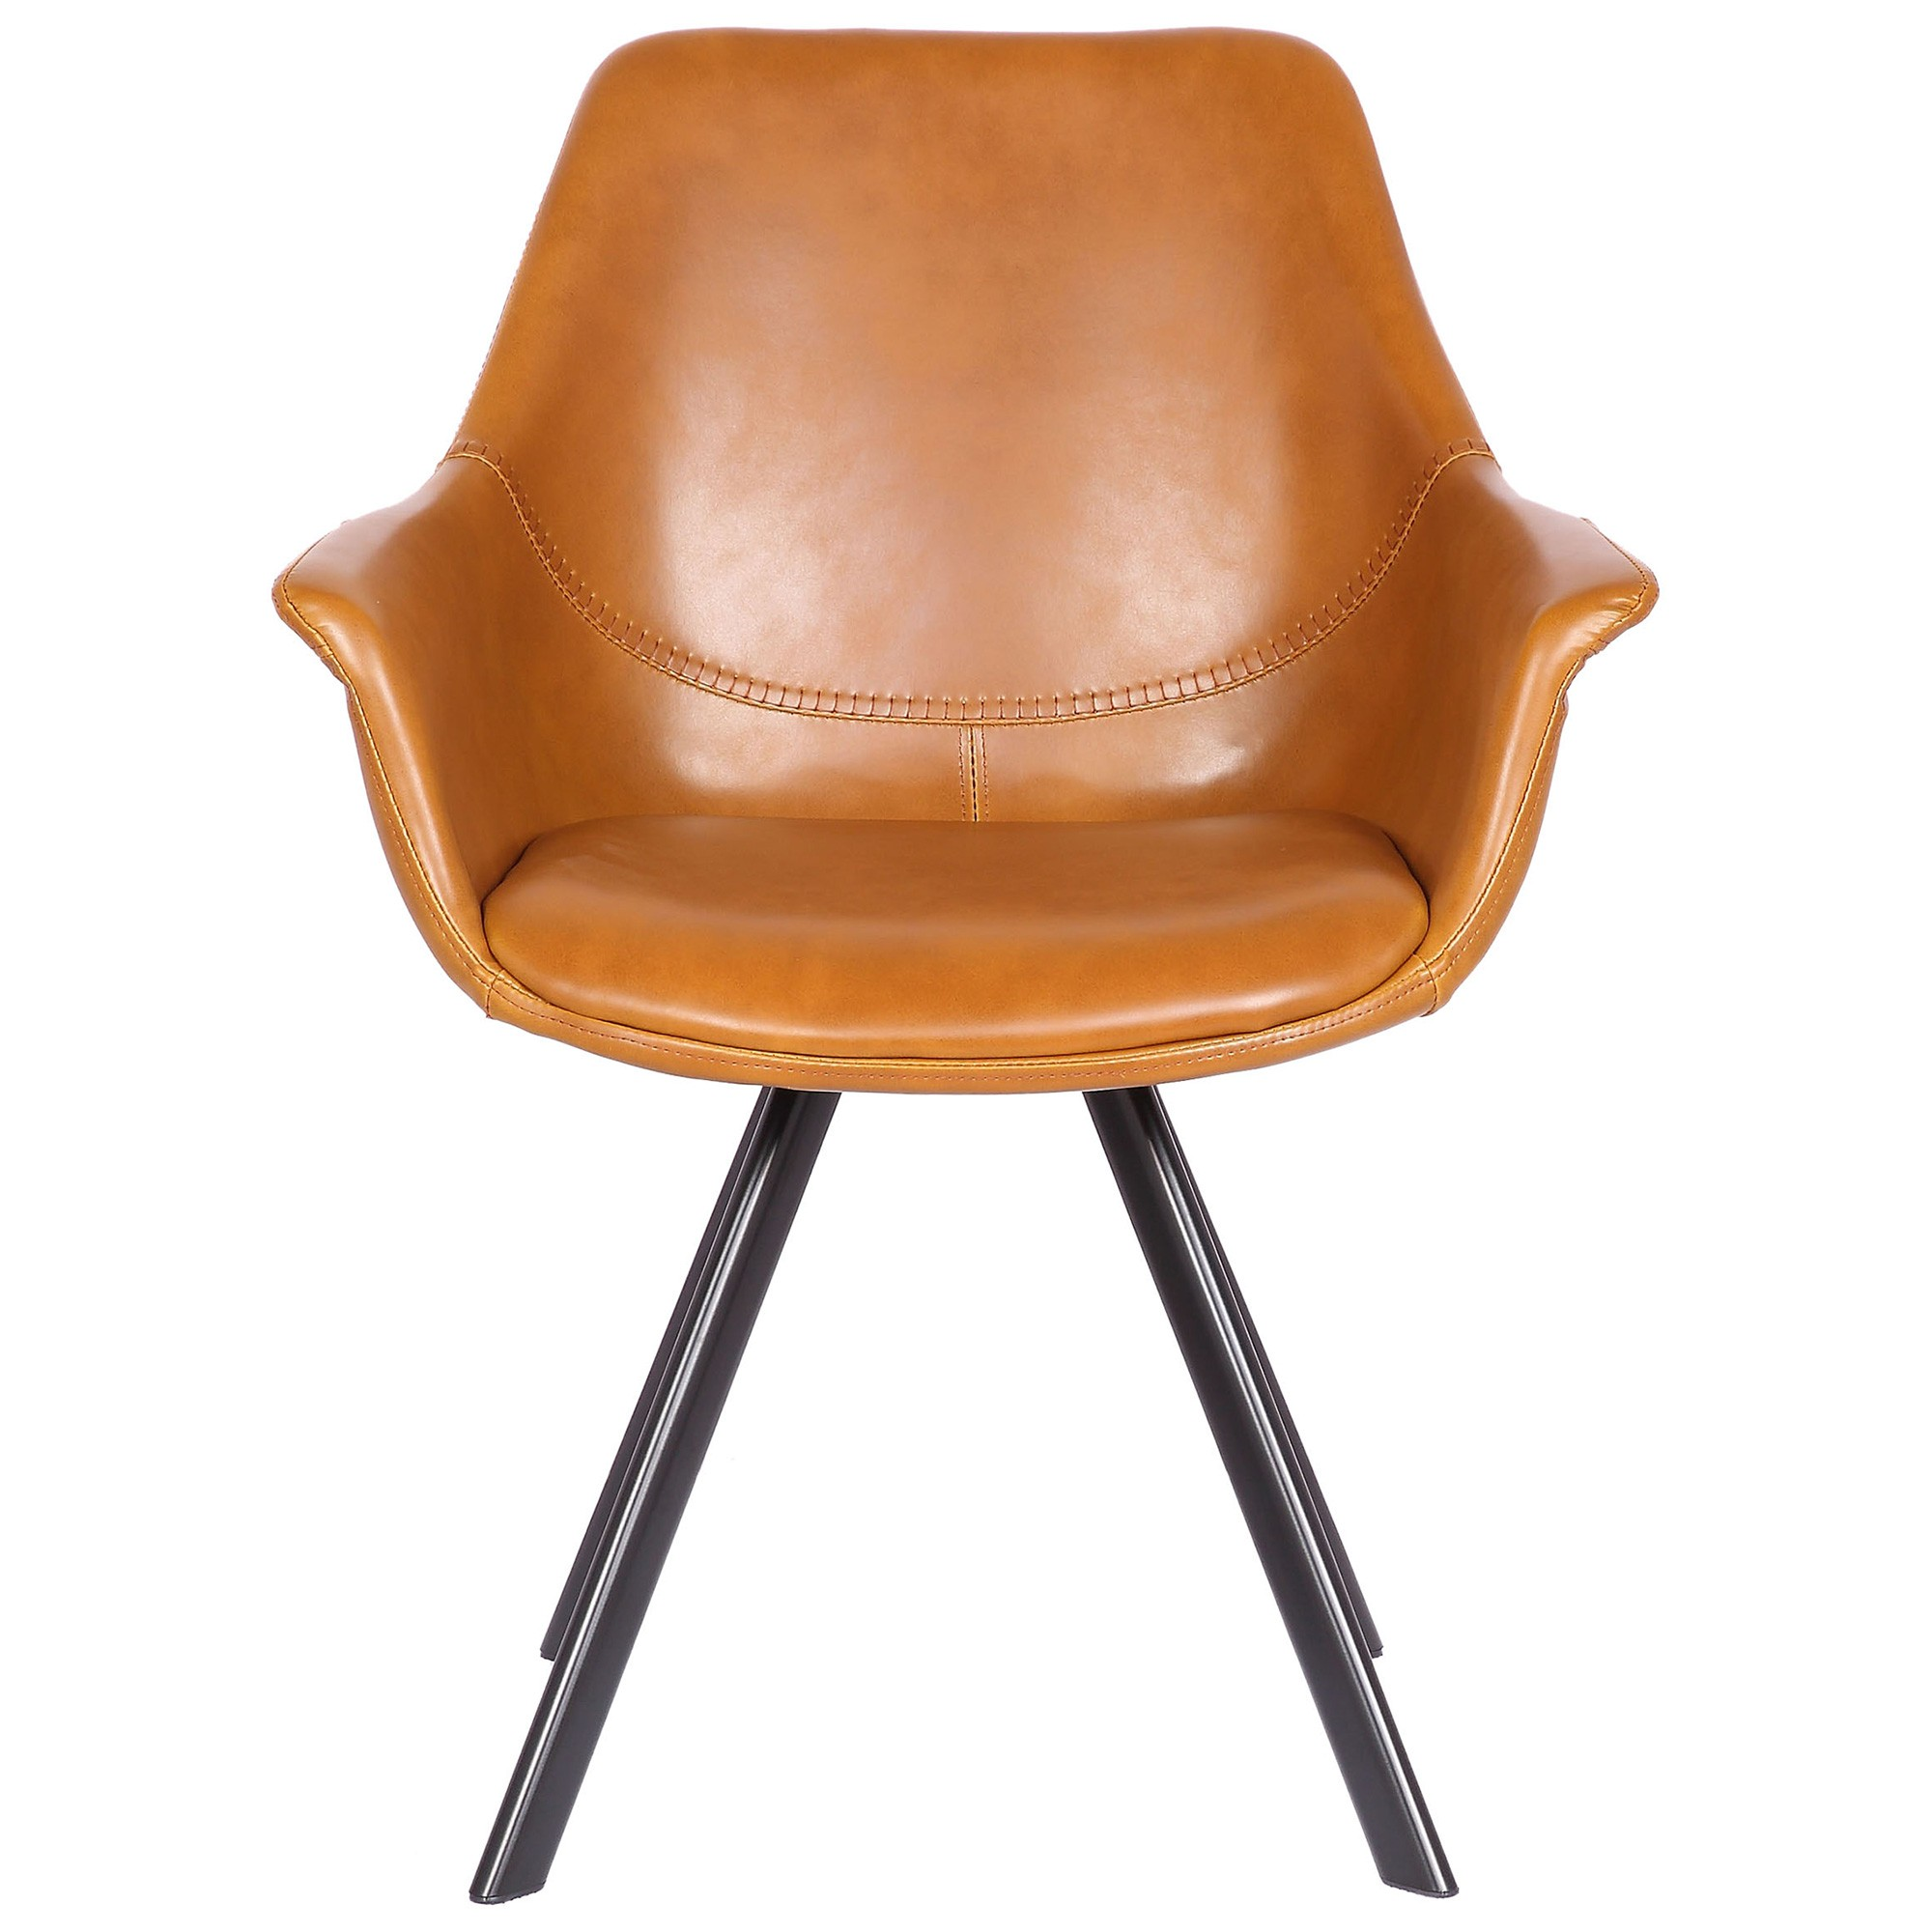 Savona Commercial Grade Faux Leather Dining Armchair, Tan